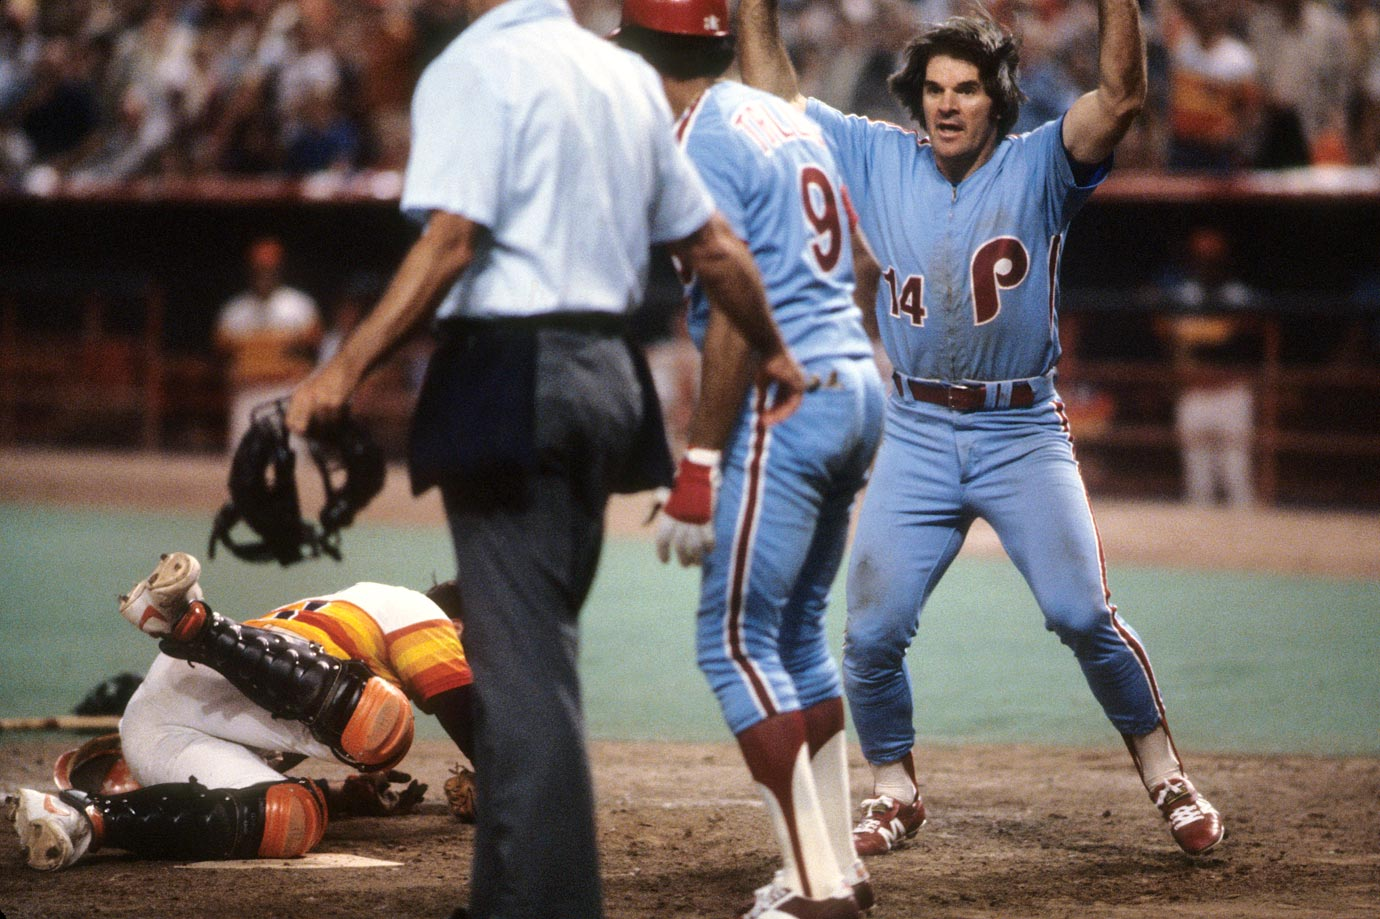 NLCS: Pete Rose celebrates scoring a run